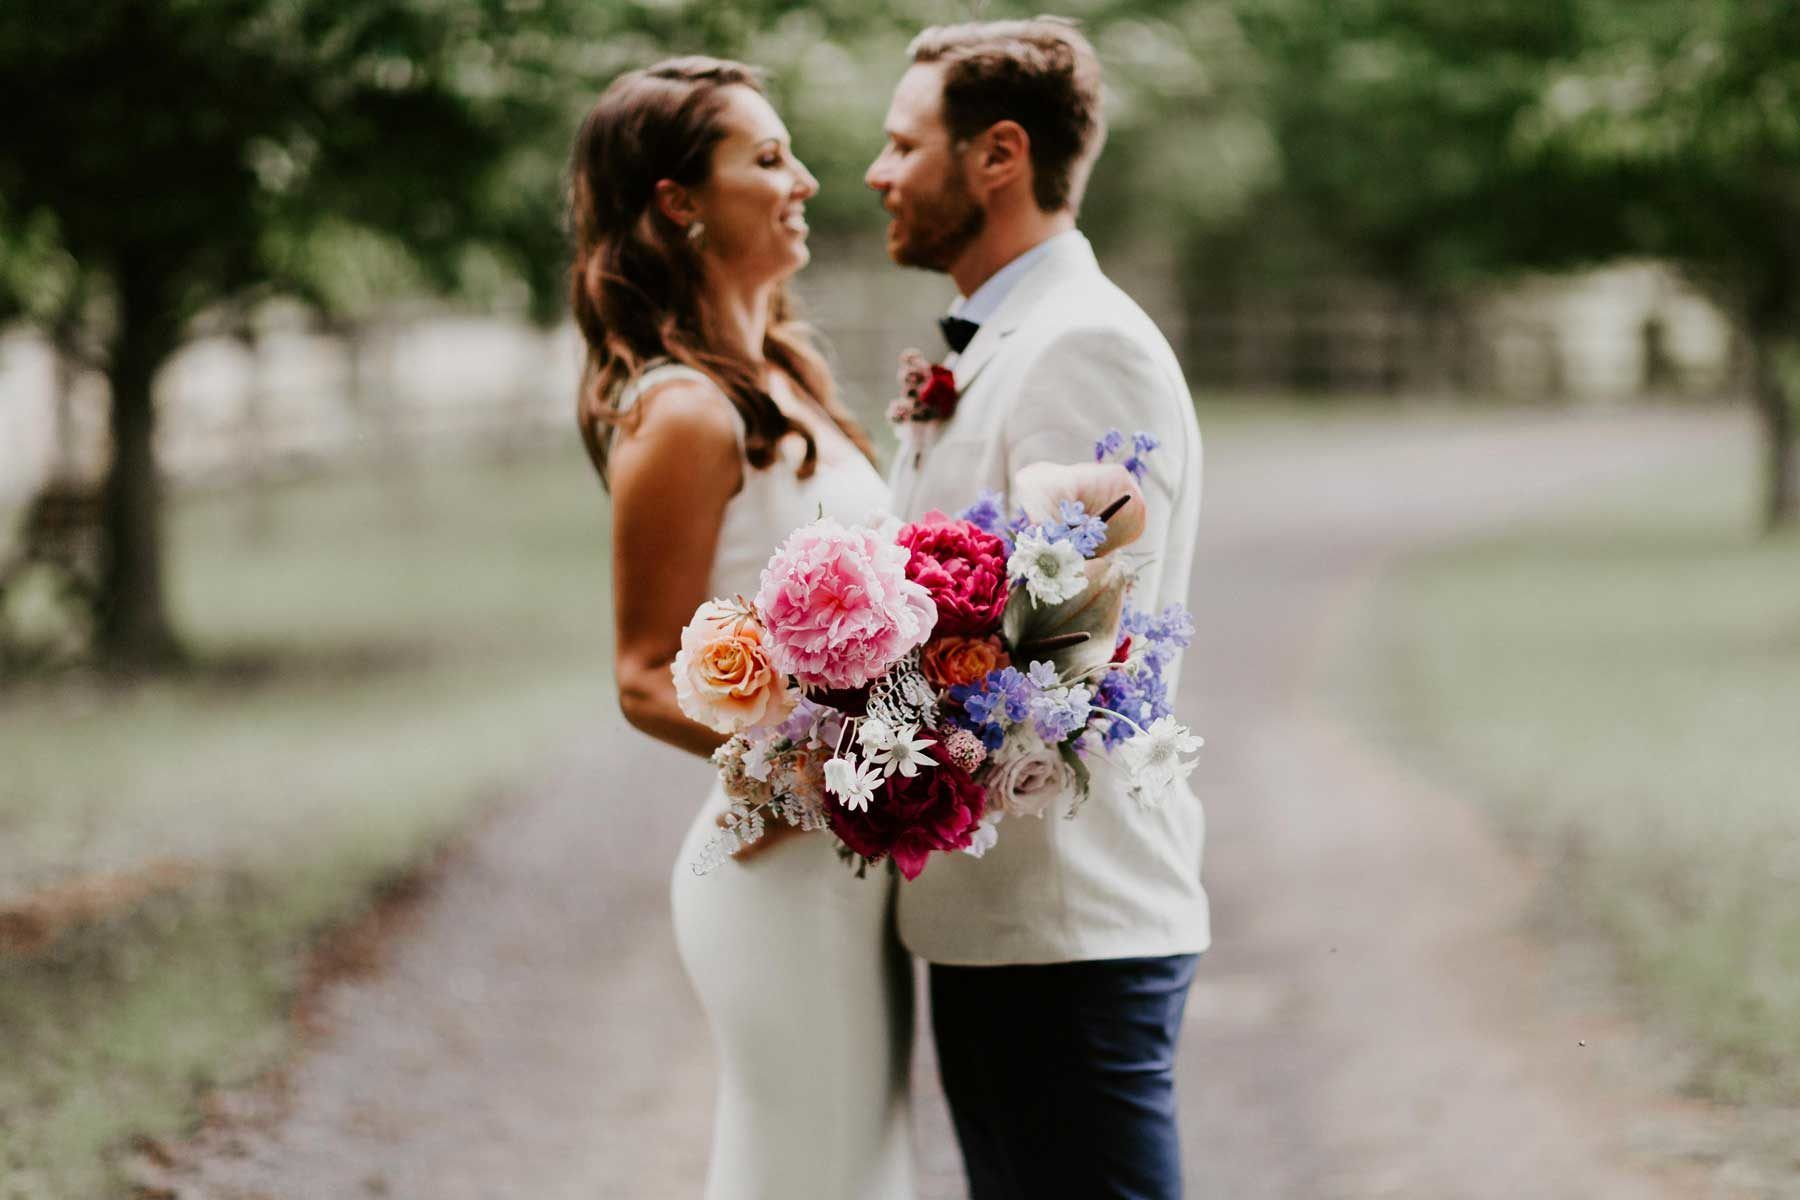 Jess & Mitch's Bloomfilled Wedding in a Community Hall